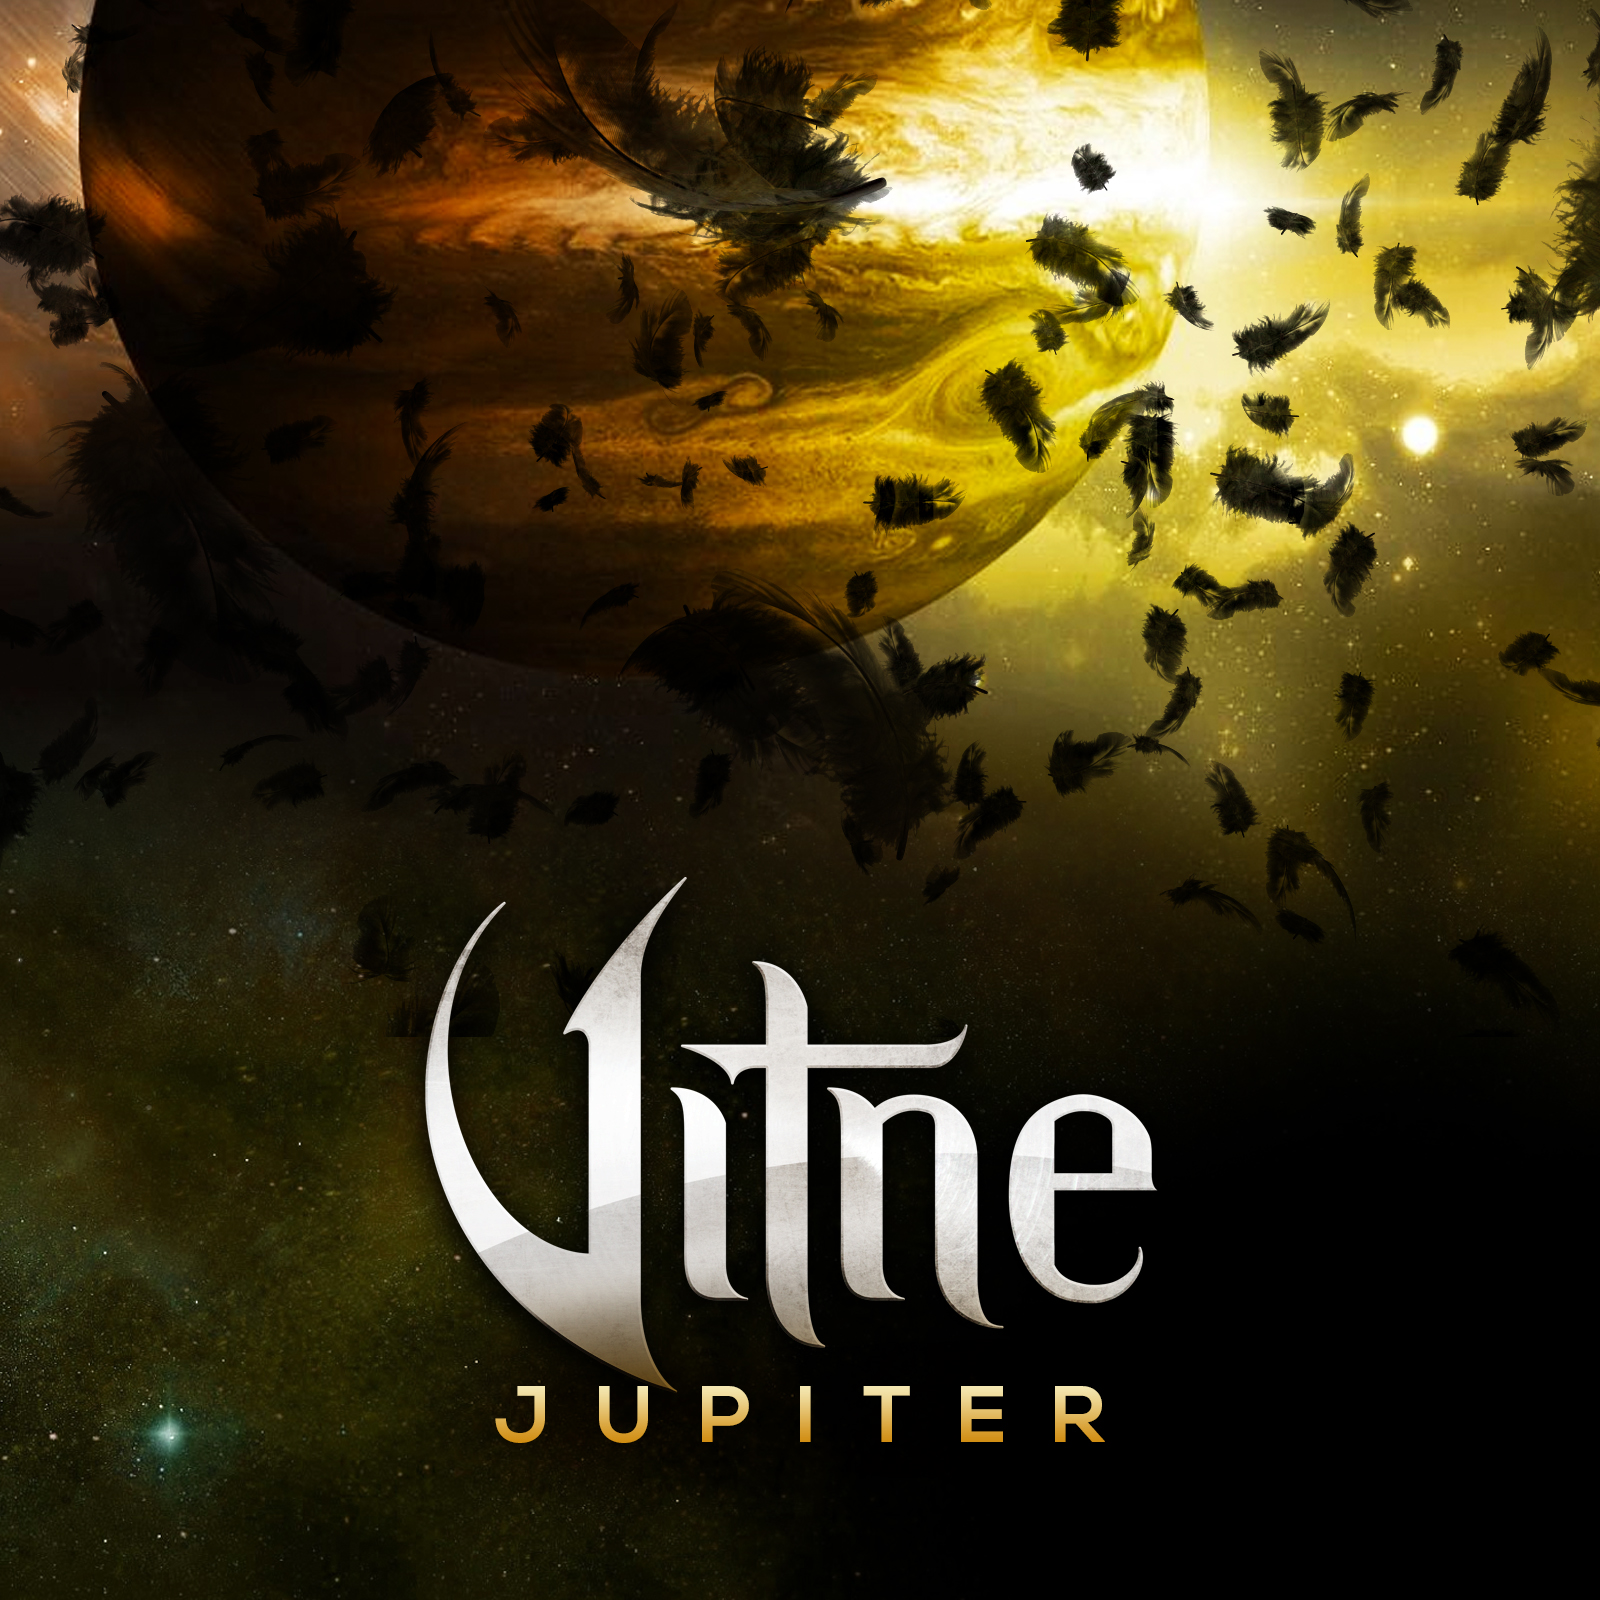 New Vitne album 2017 Jupiter